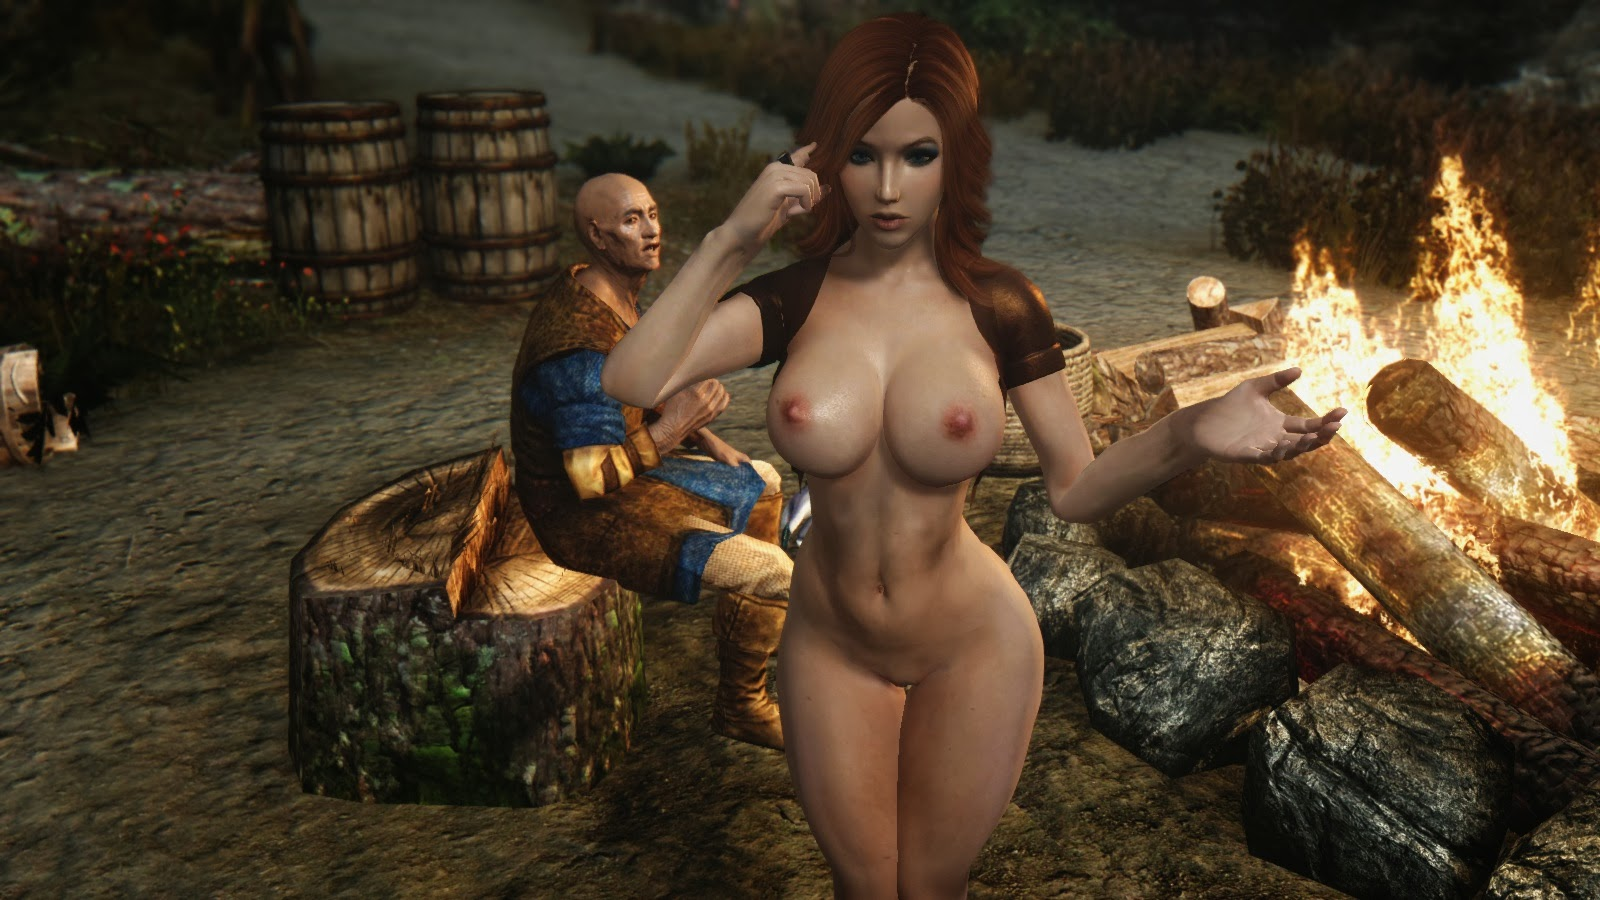 Pc game naked girl character pic hd adult girls